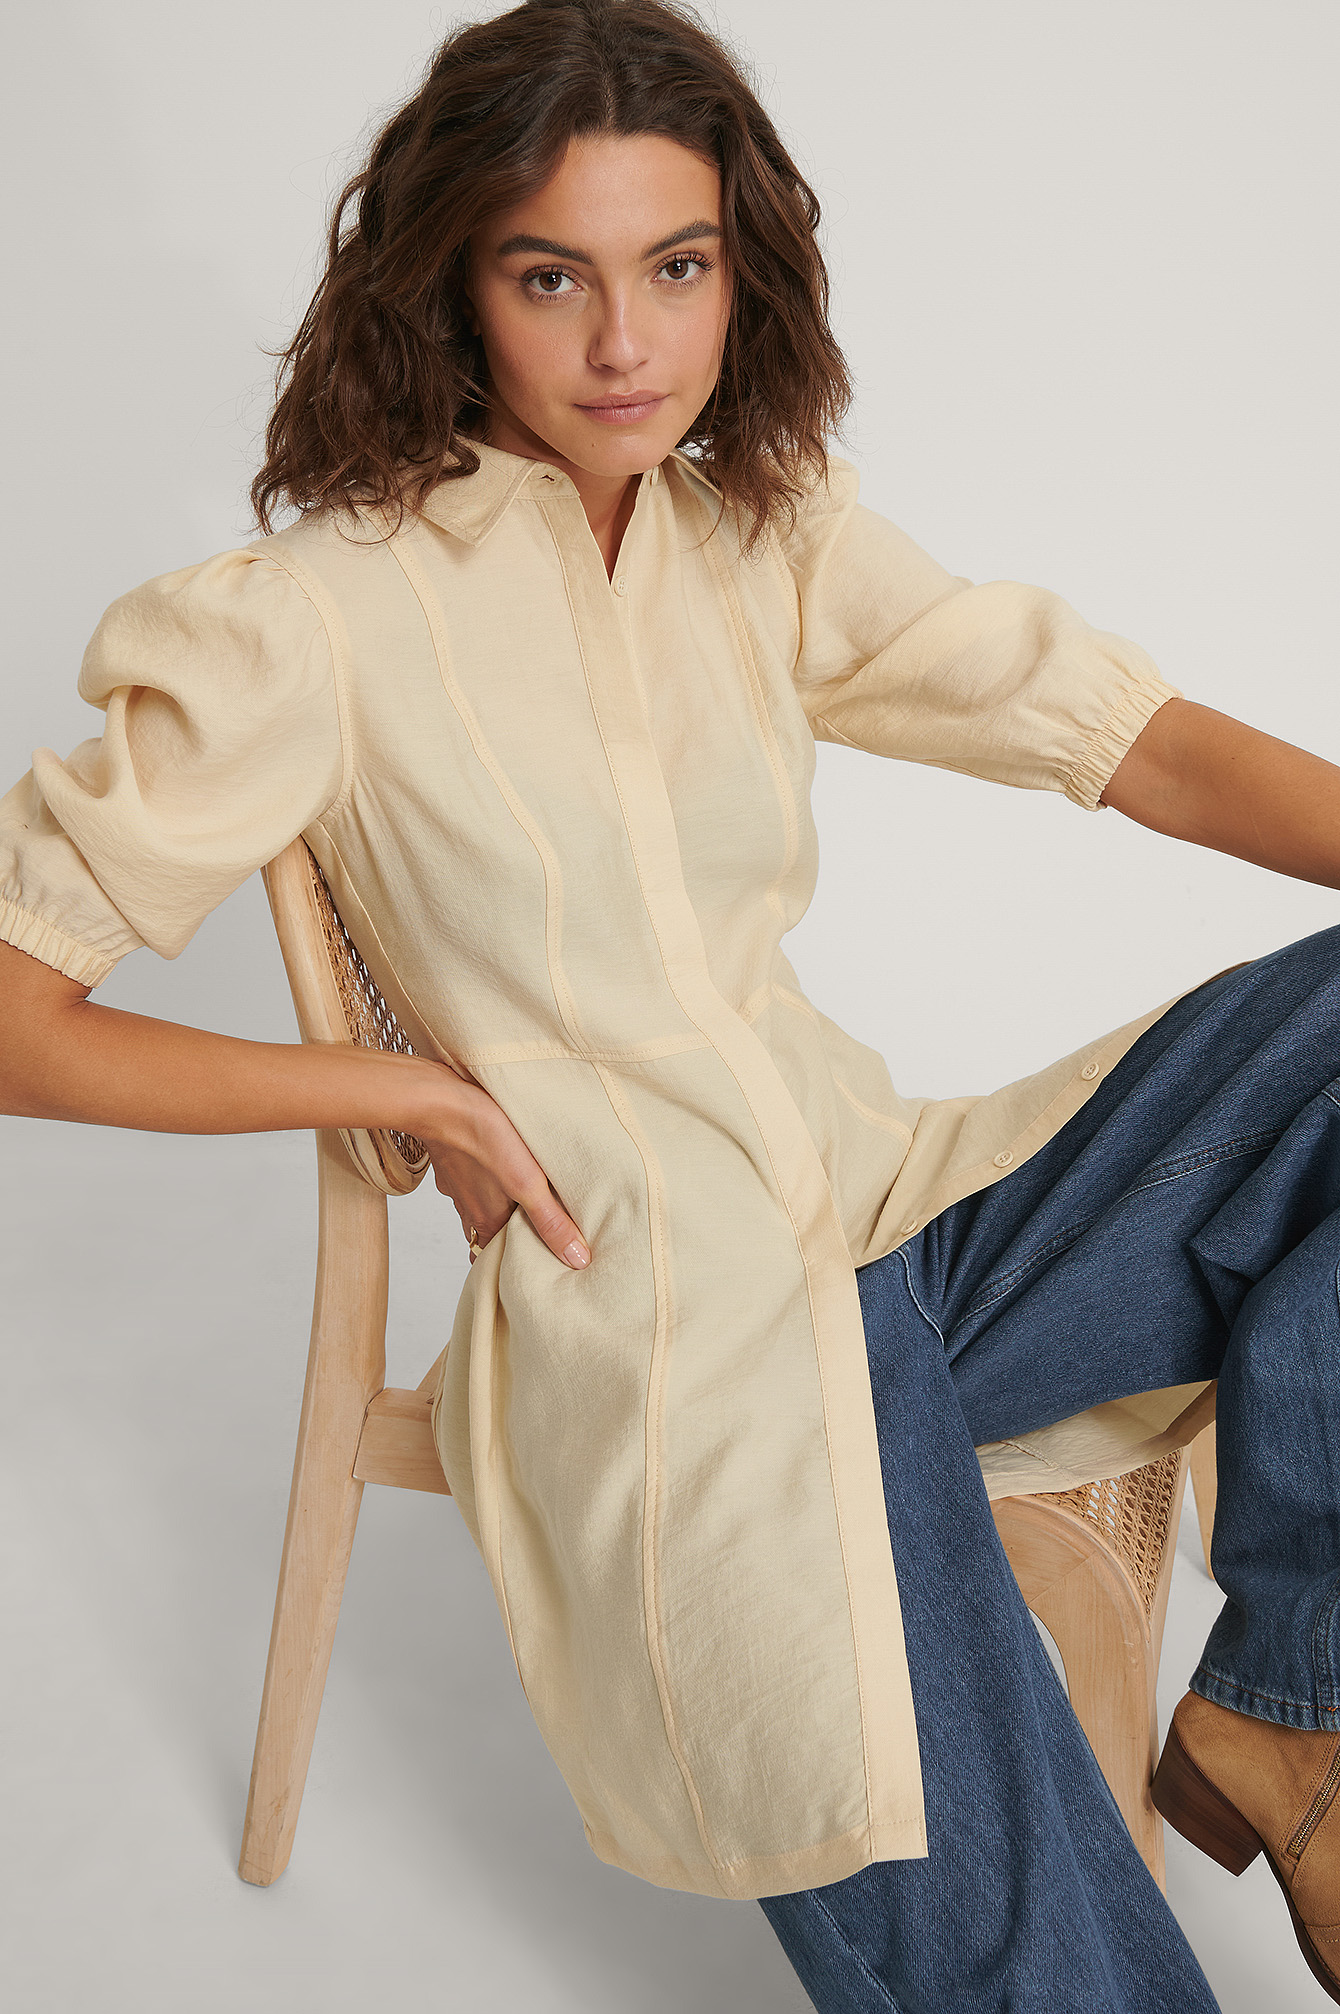 Brown/Beige Puffy Sleeve Shirt Dress